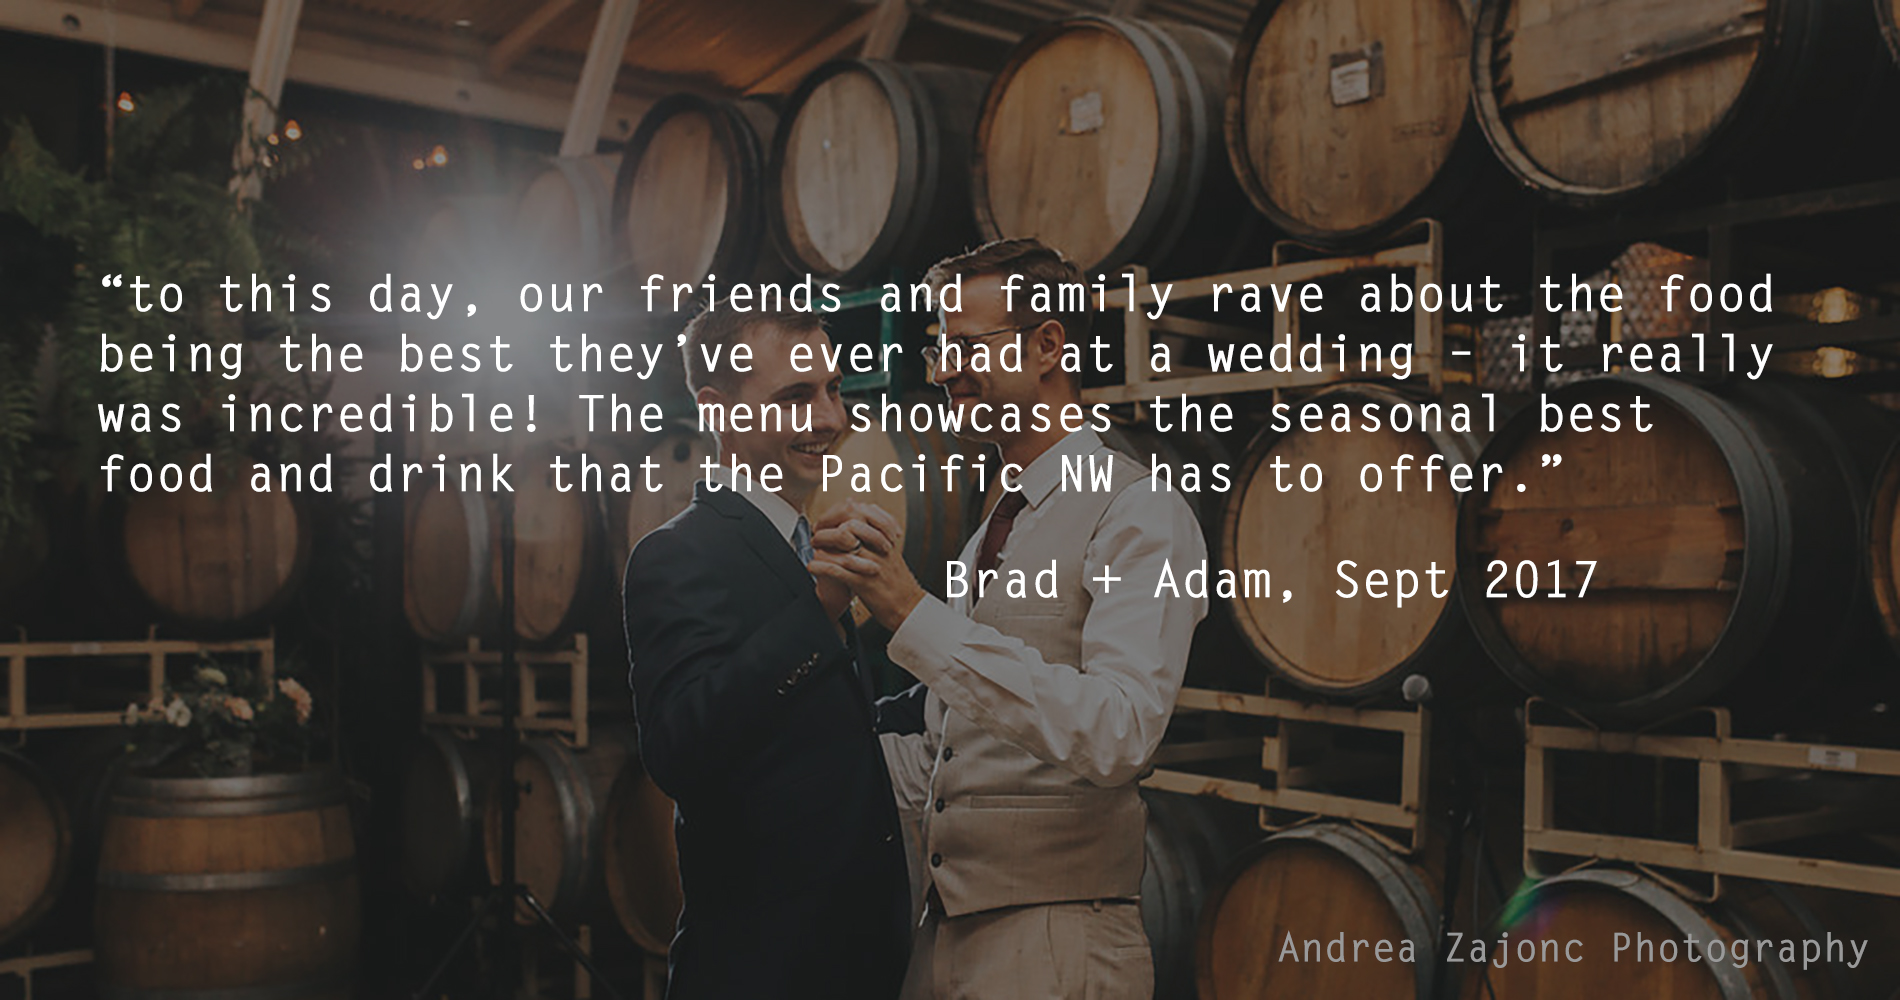 Andrea_Zajonc_Photography_2_-_Weddings_Wedding_Events_Design_Wedding_Cake_Corporate_Business_Meeting_Sales_Training_Event_Marketing_Oregon_Portland_Adventure_Winery_Taproom_Event-Space_Dinner_Party_Restaurant